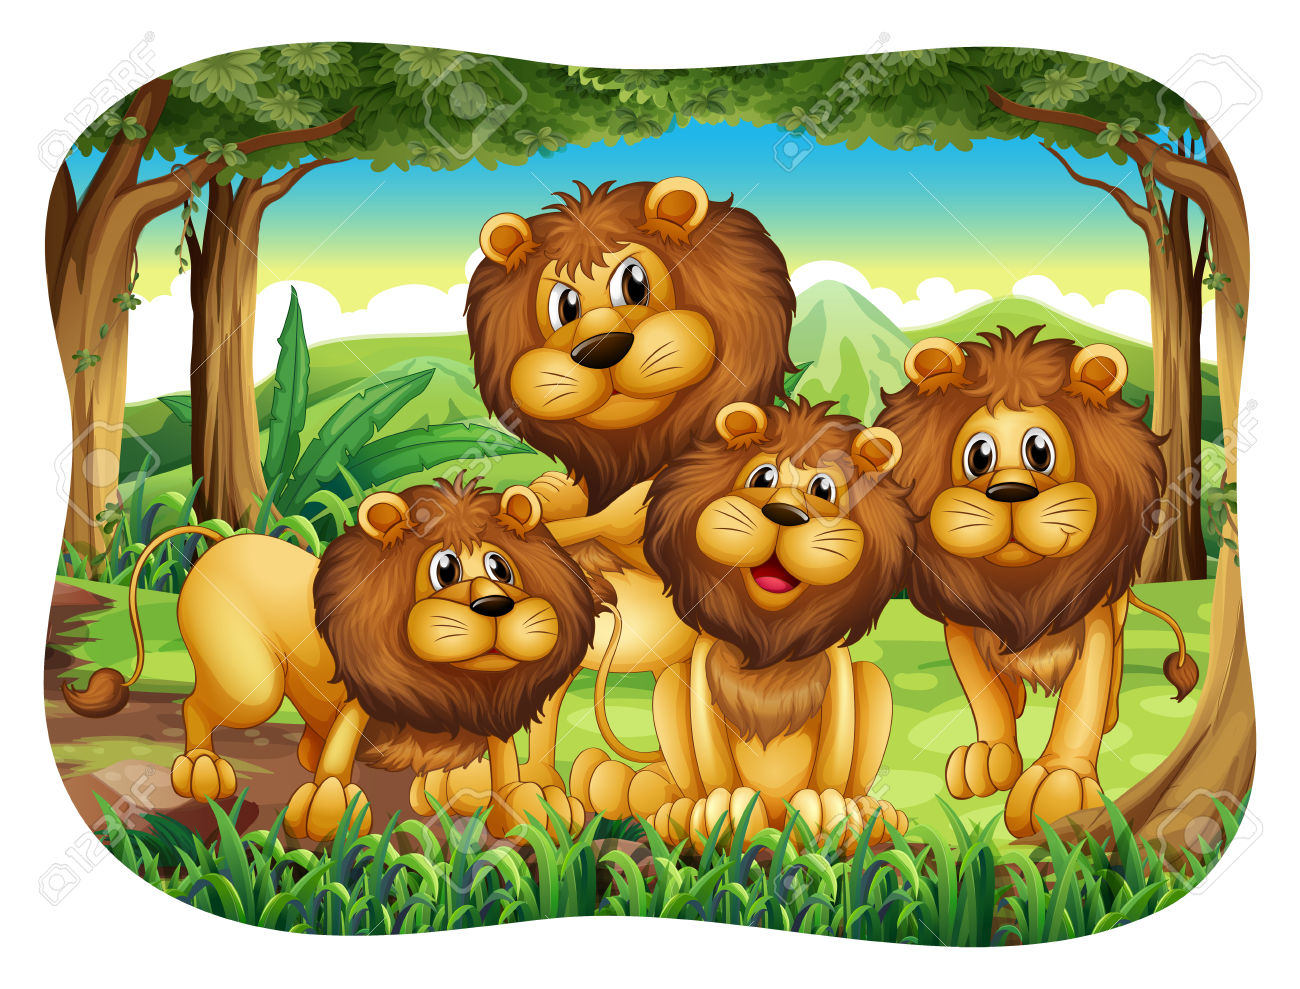 Four Lions Living In The Forest Royalty Free Cliparts, Vectors.